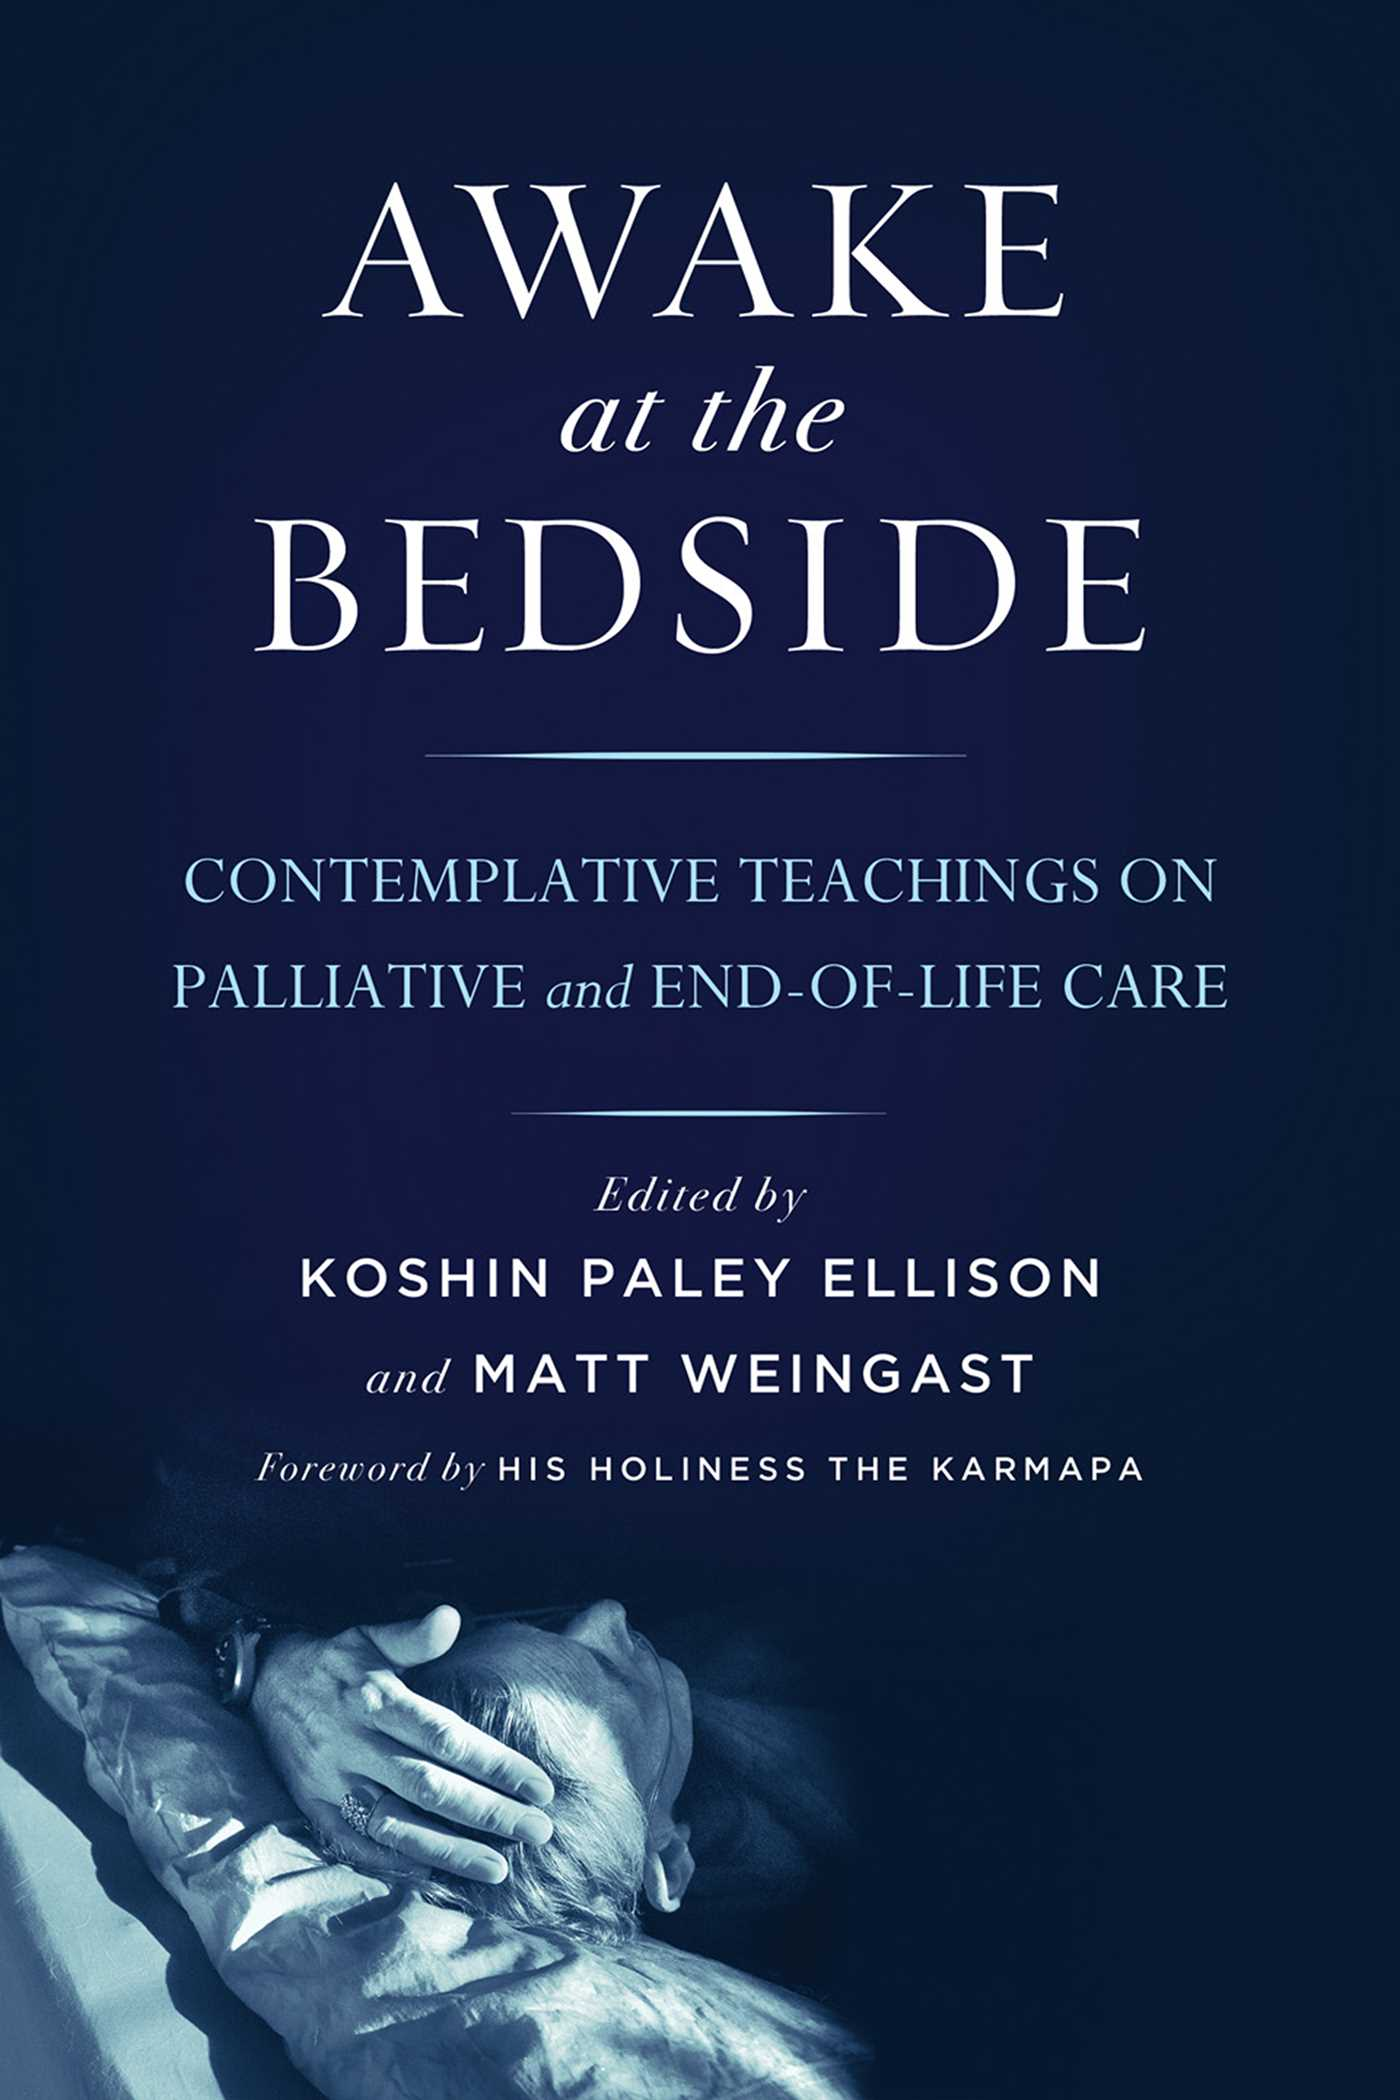 Awake at the Bedside Contemplative Teachings on Palliative and End-of-Life Care